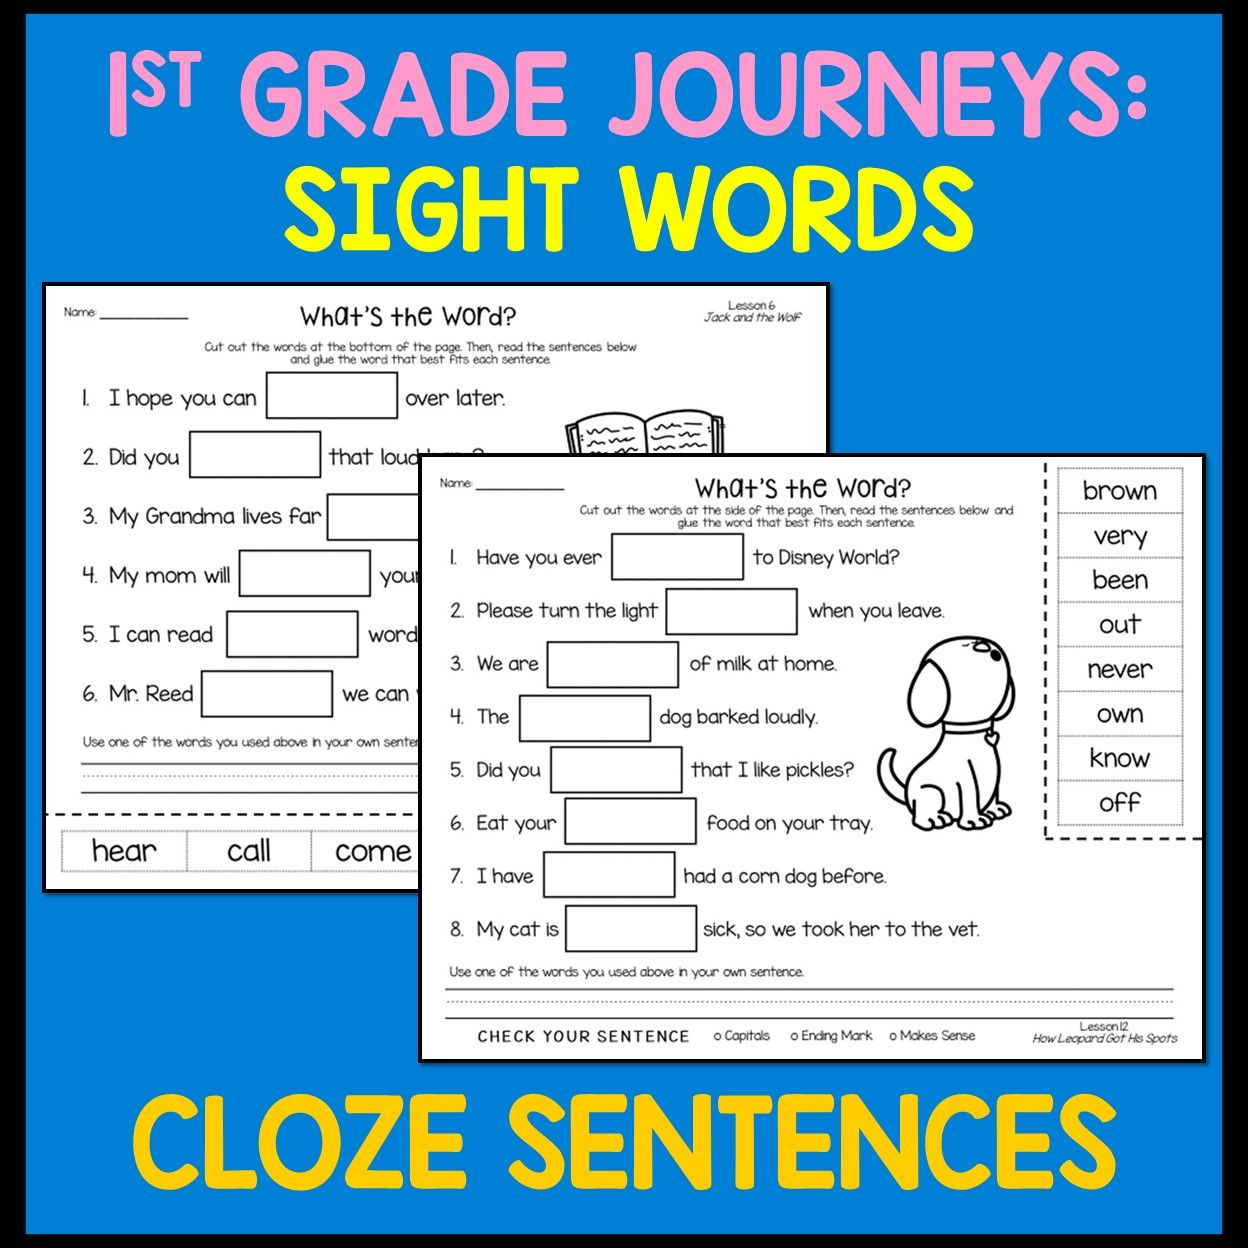 small resolution of Cloze Sentences for 1st Grade Journeys Sight Words   Sight words